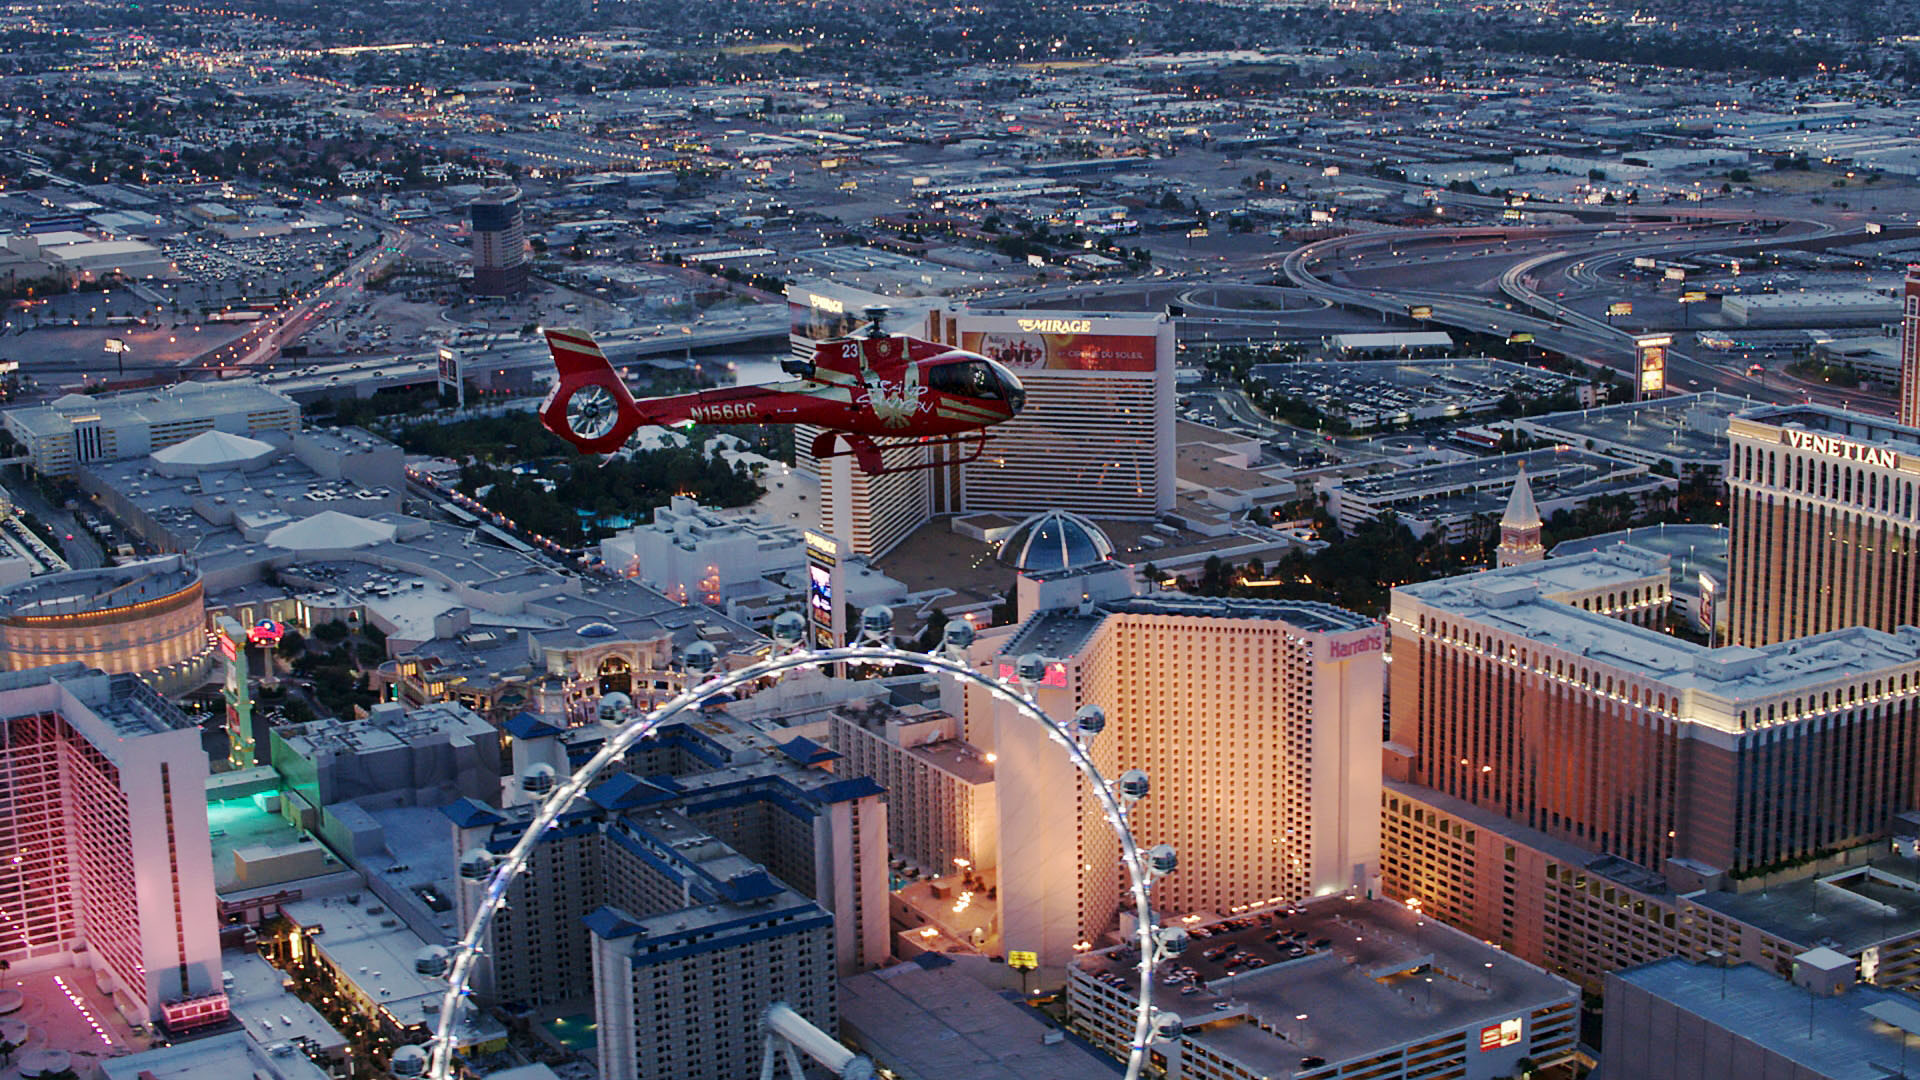 A red helicopter flies over the ferris wheel on the Las Vegas Strip.